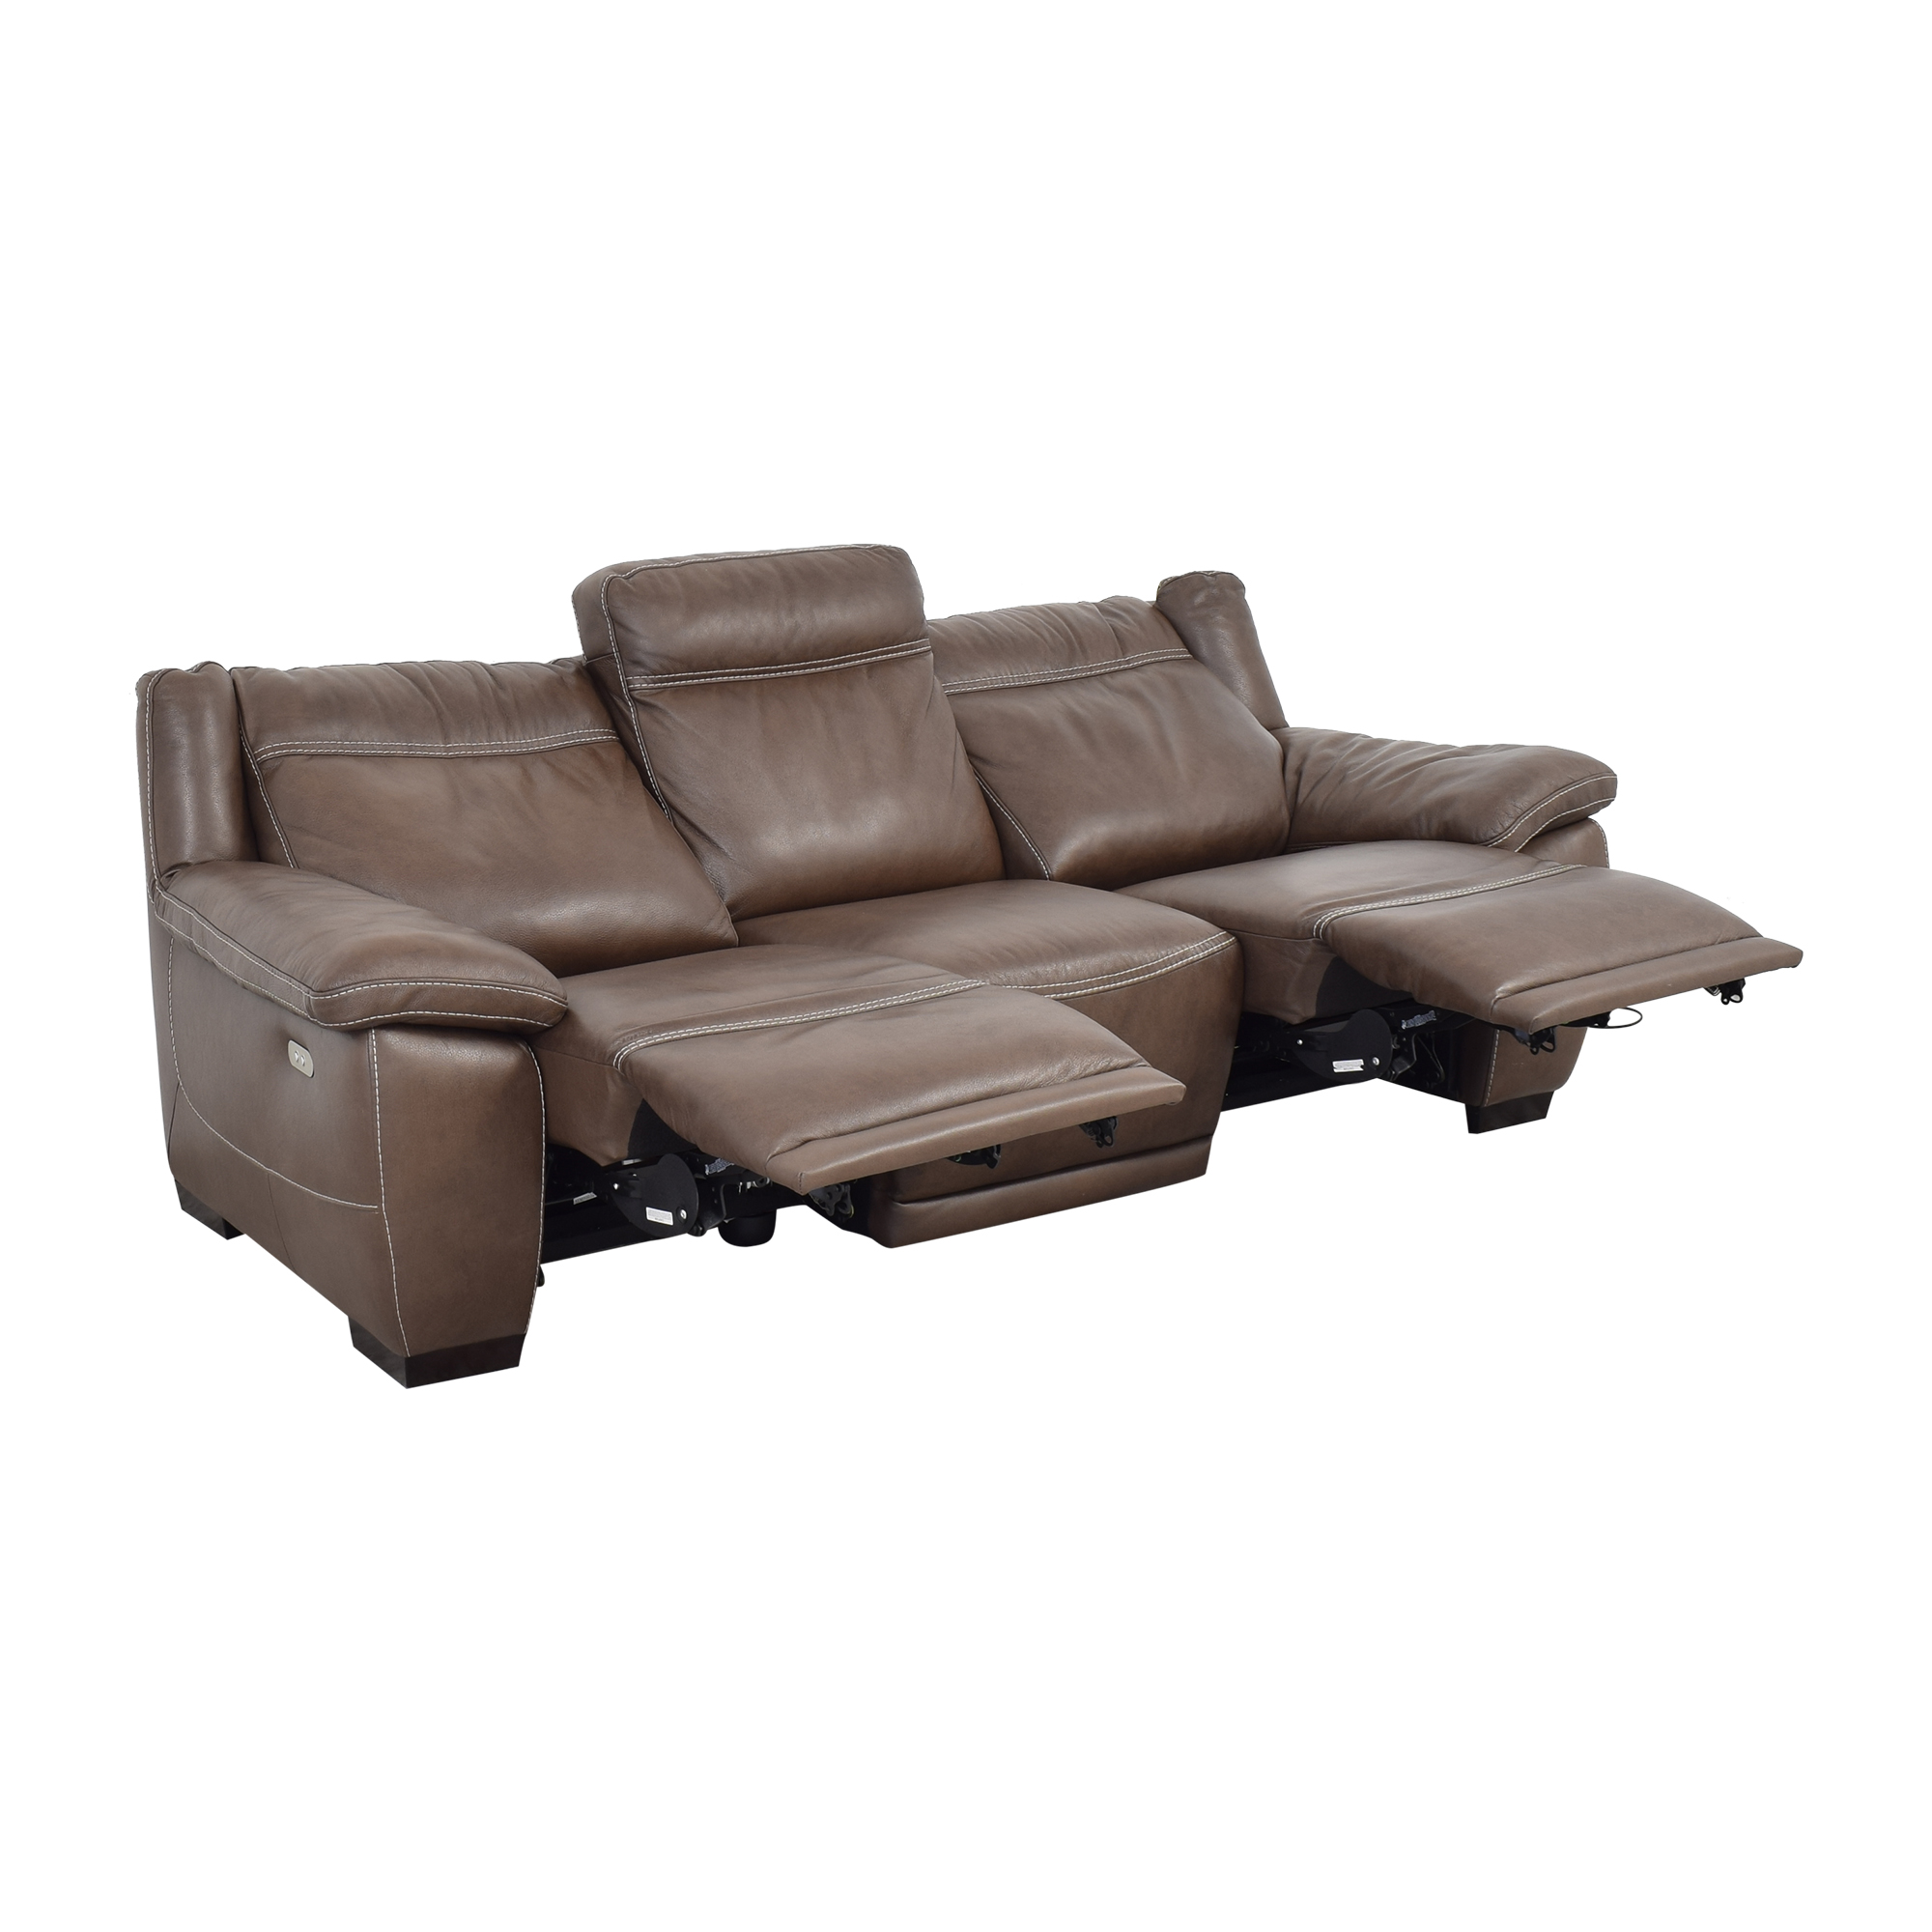 Raymour & Flanigan Raymour & Flanigan Sofa with Two Recliners nyc